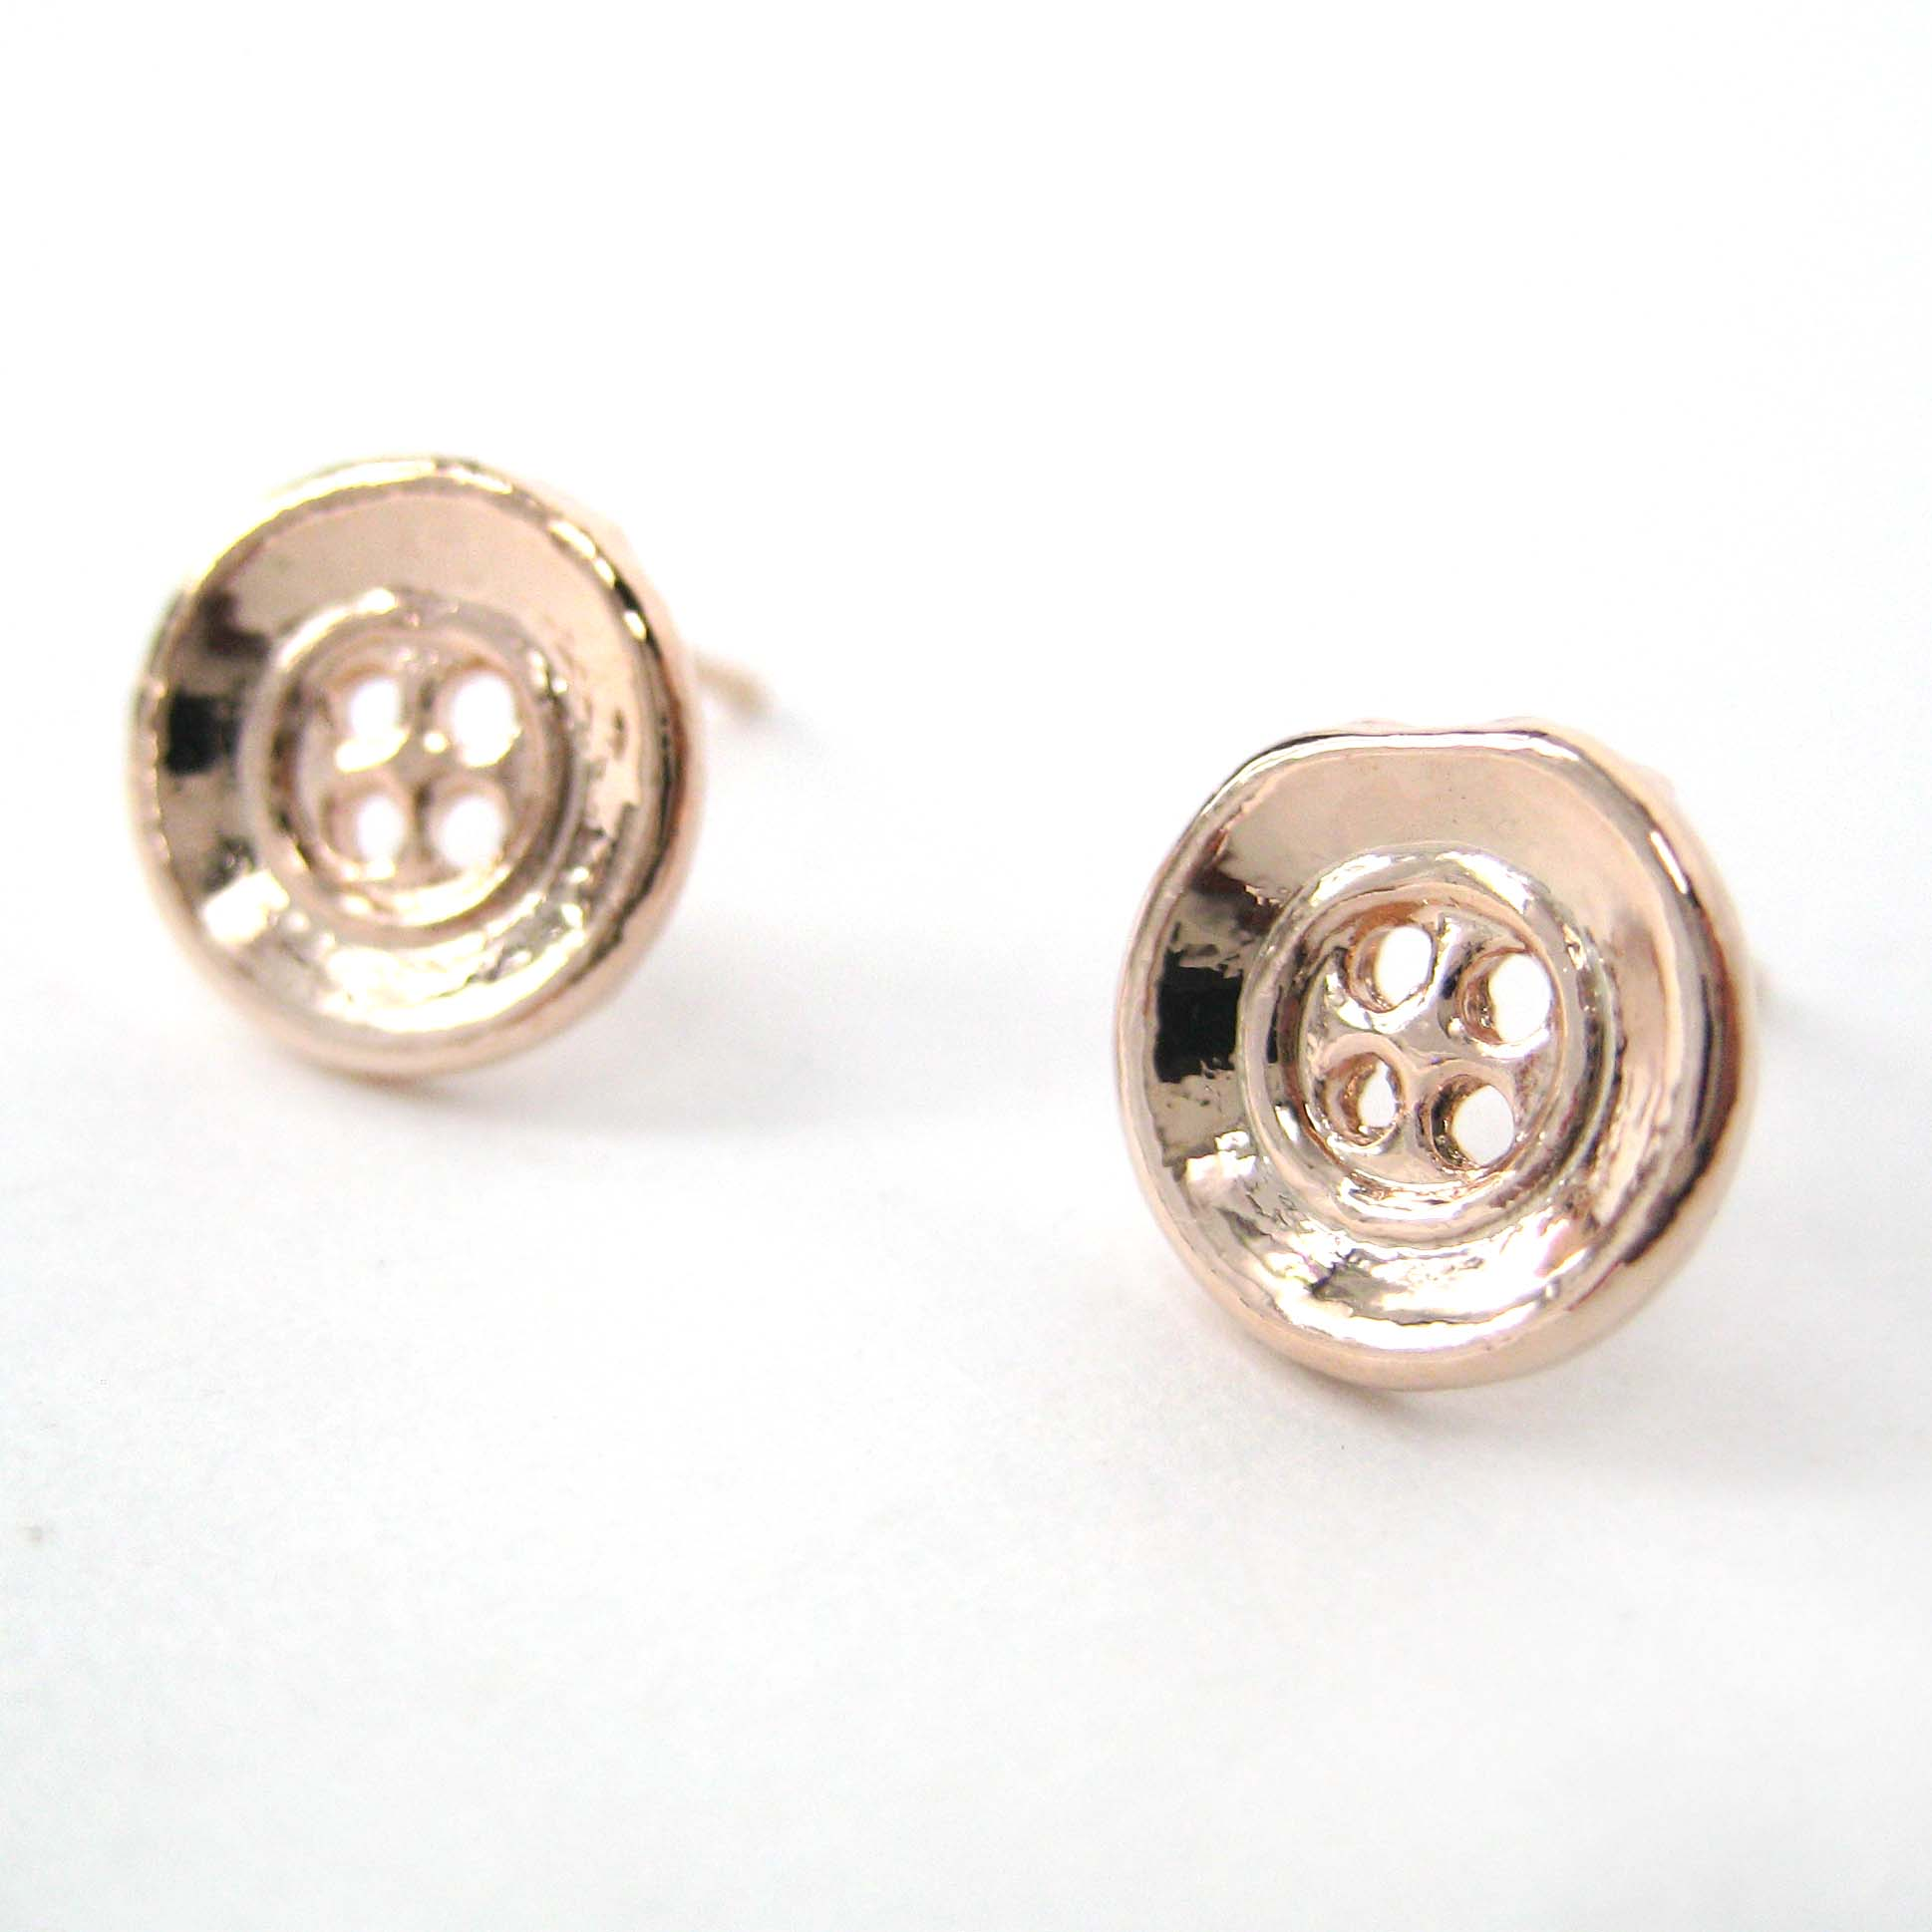 image button plated jewellers rose earrings kors stainless grahams steel michael gold a stud